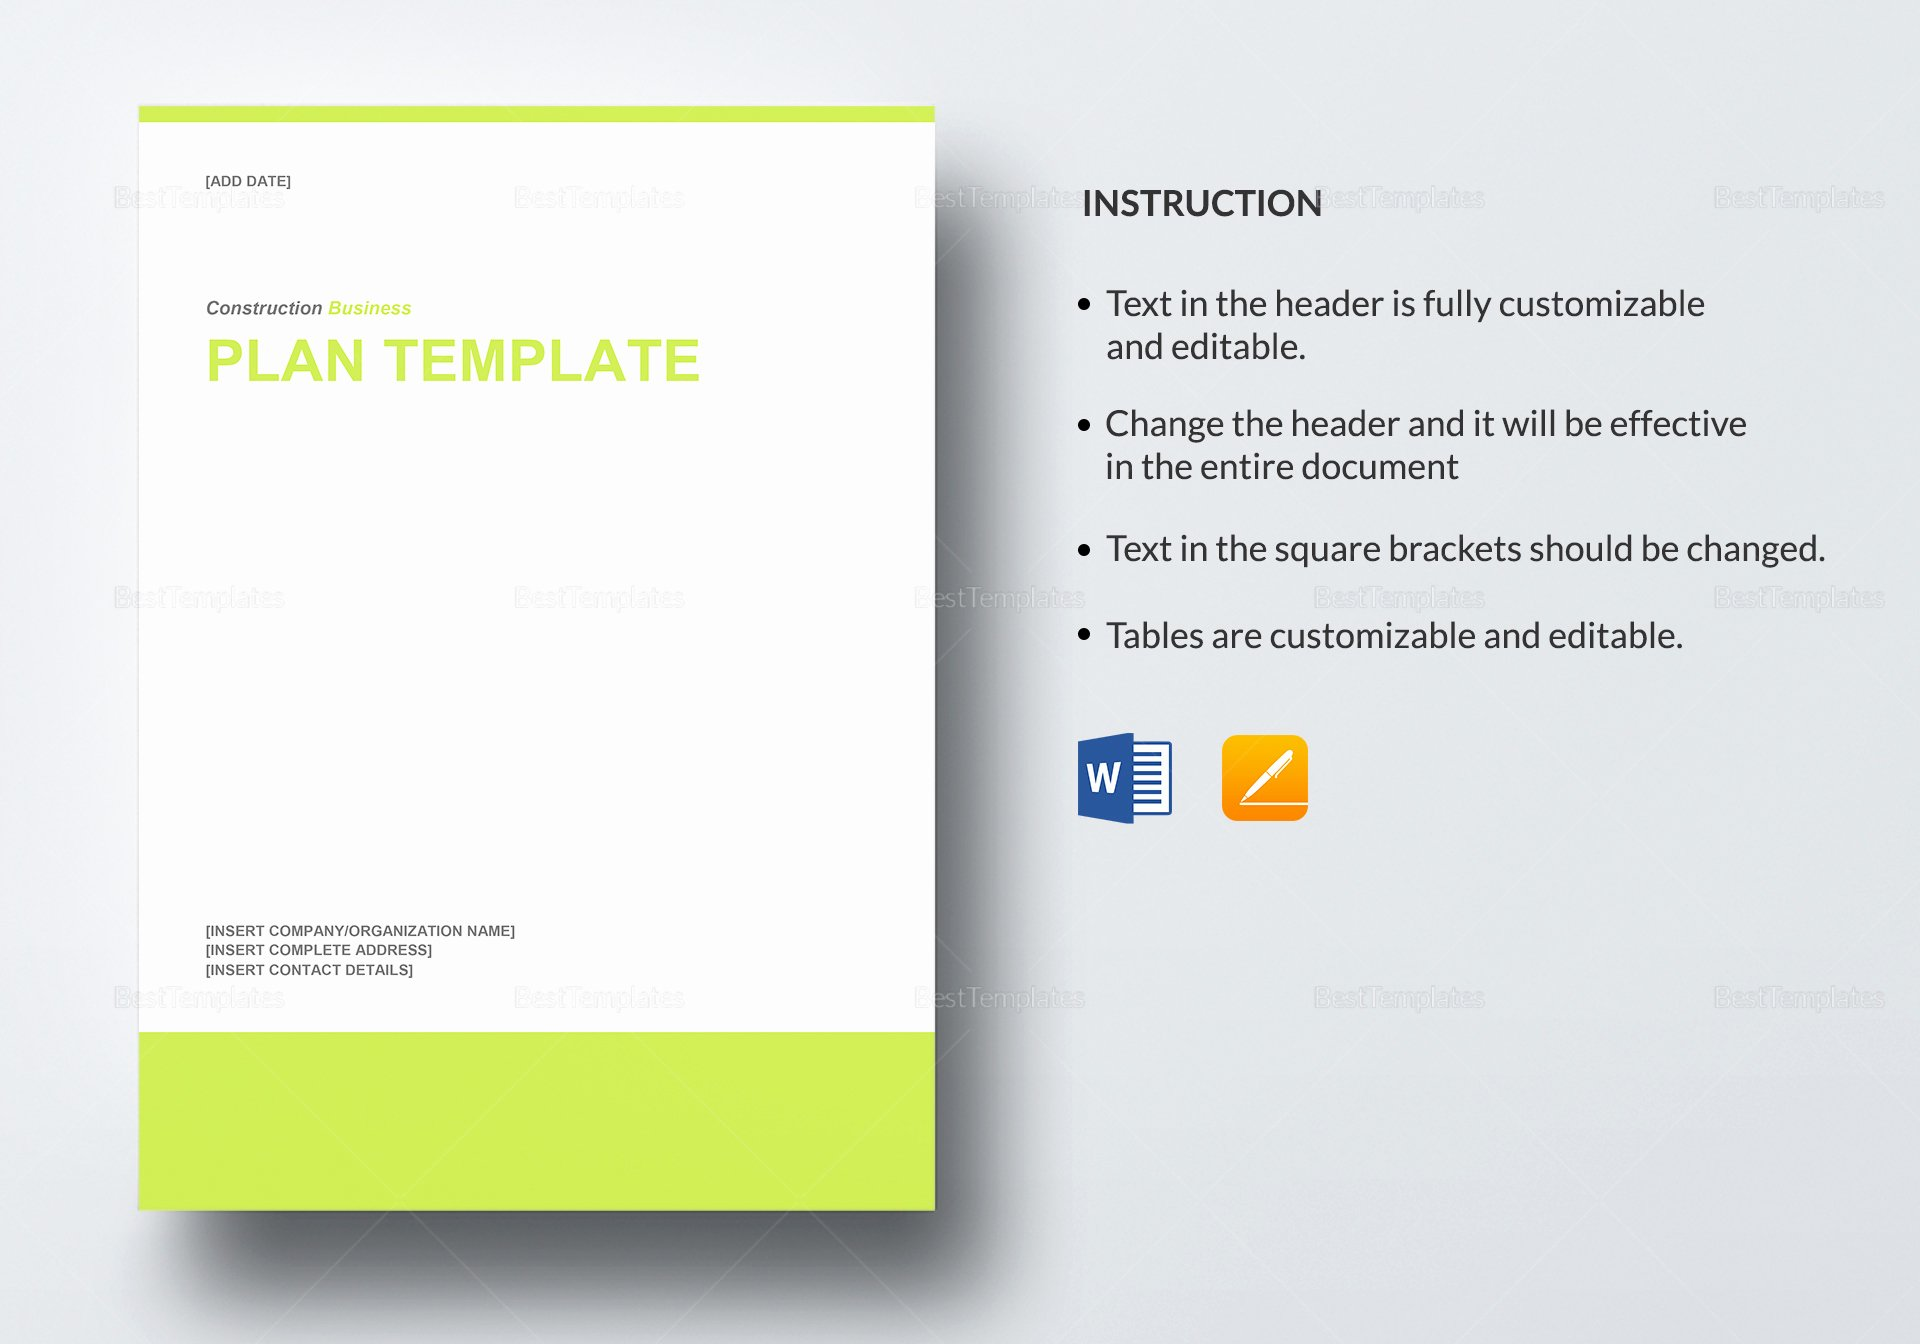 Construction Business Plan Template Awesome Construction Business Plan Template In Word Google Docs